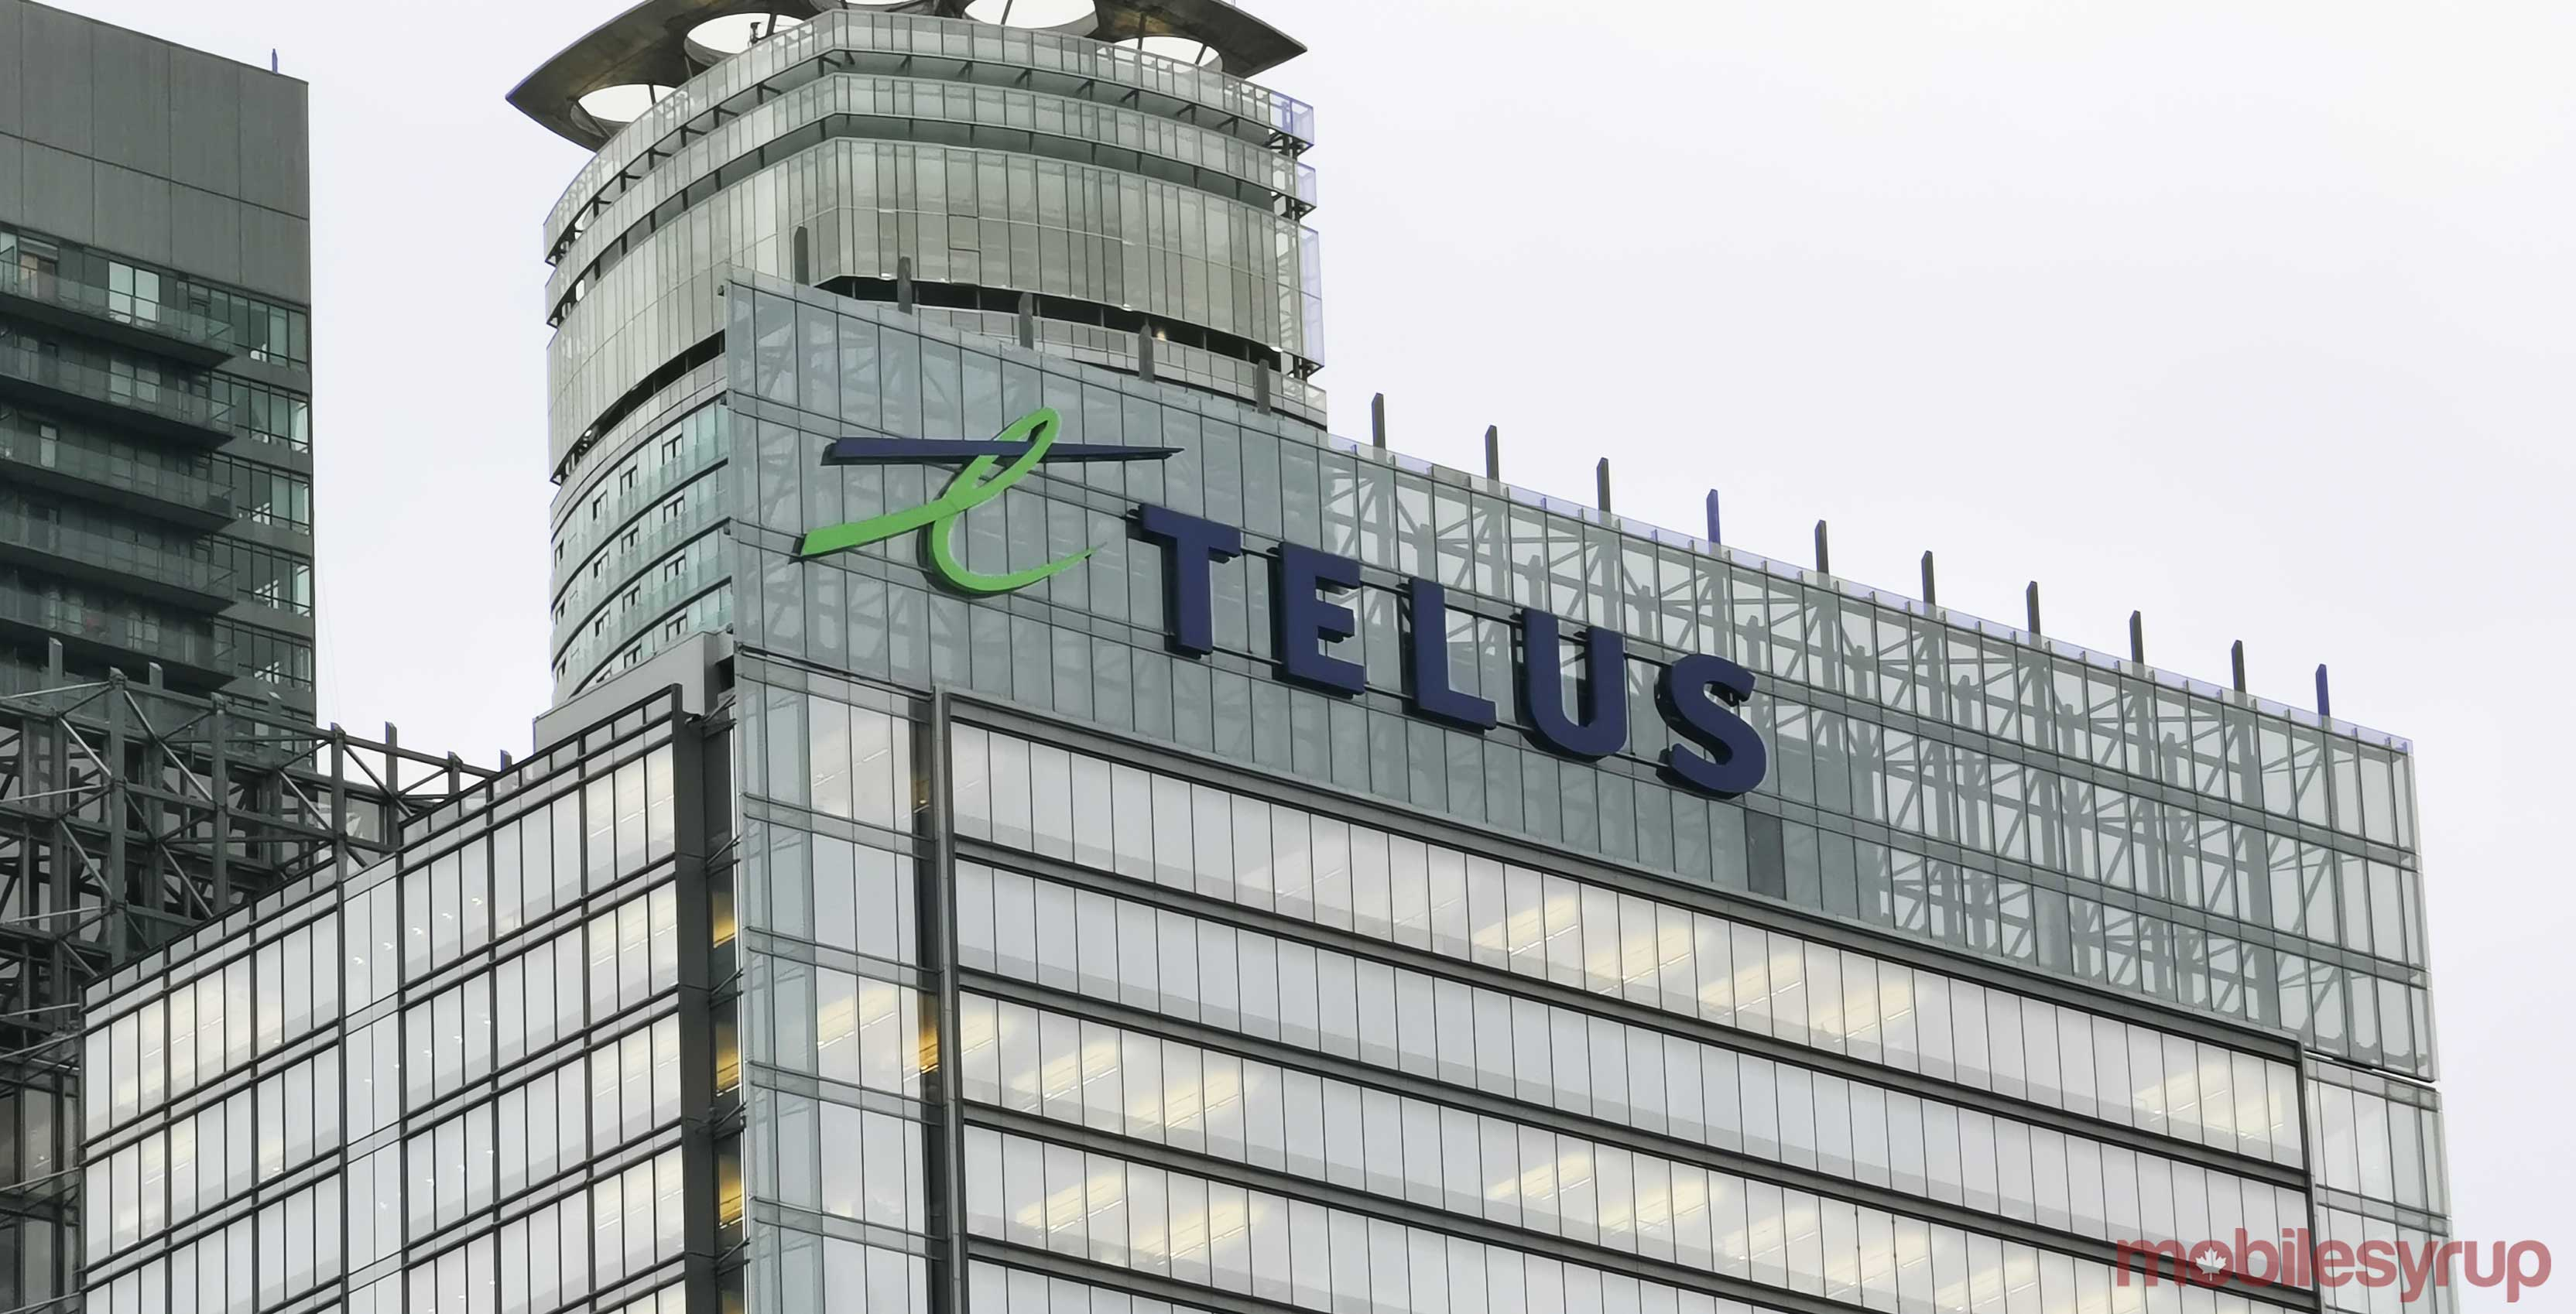 Telus to launch $75 15GB promotion in response to Rogers' Infinite plan